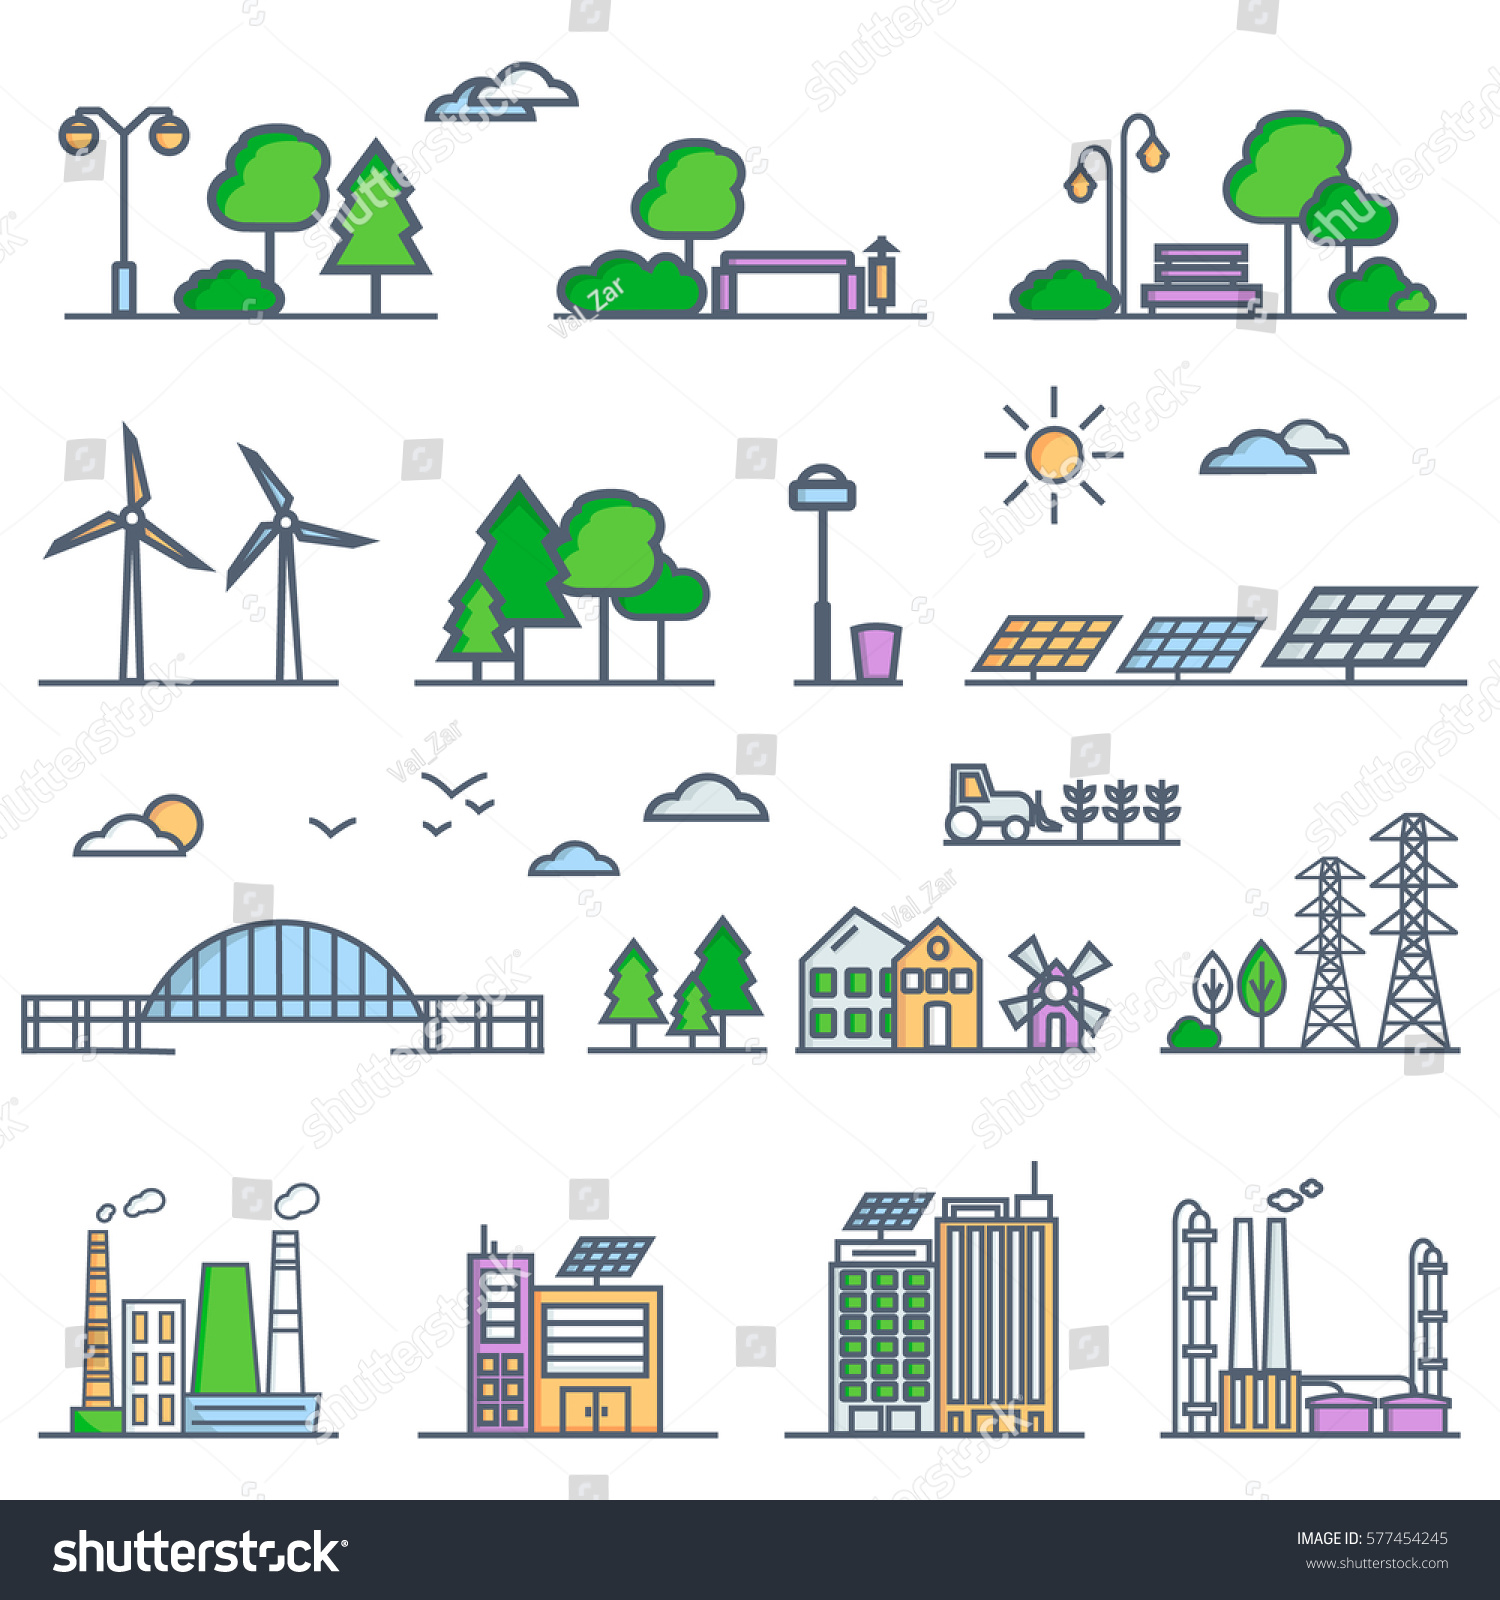 Eco City Linear Style Solar Panels Stock Vector